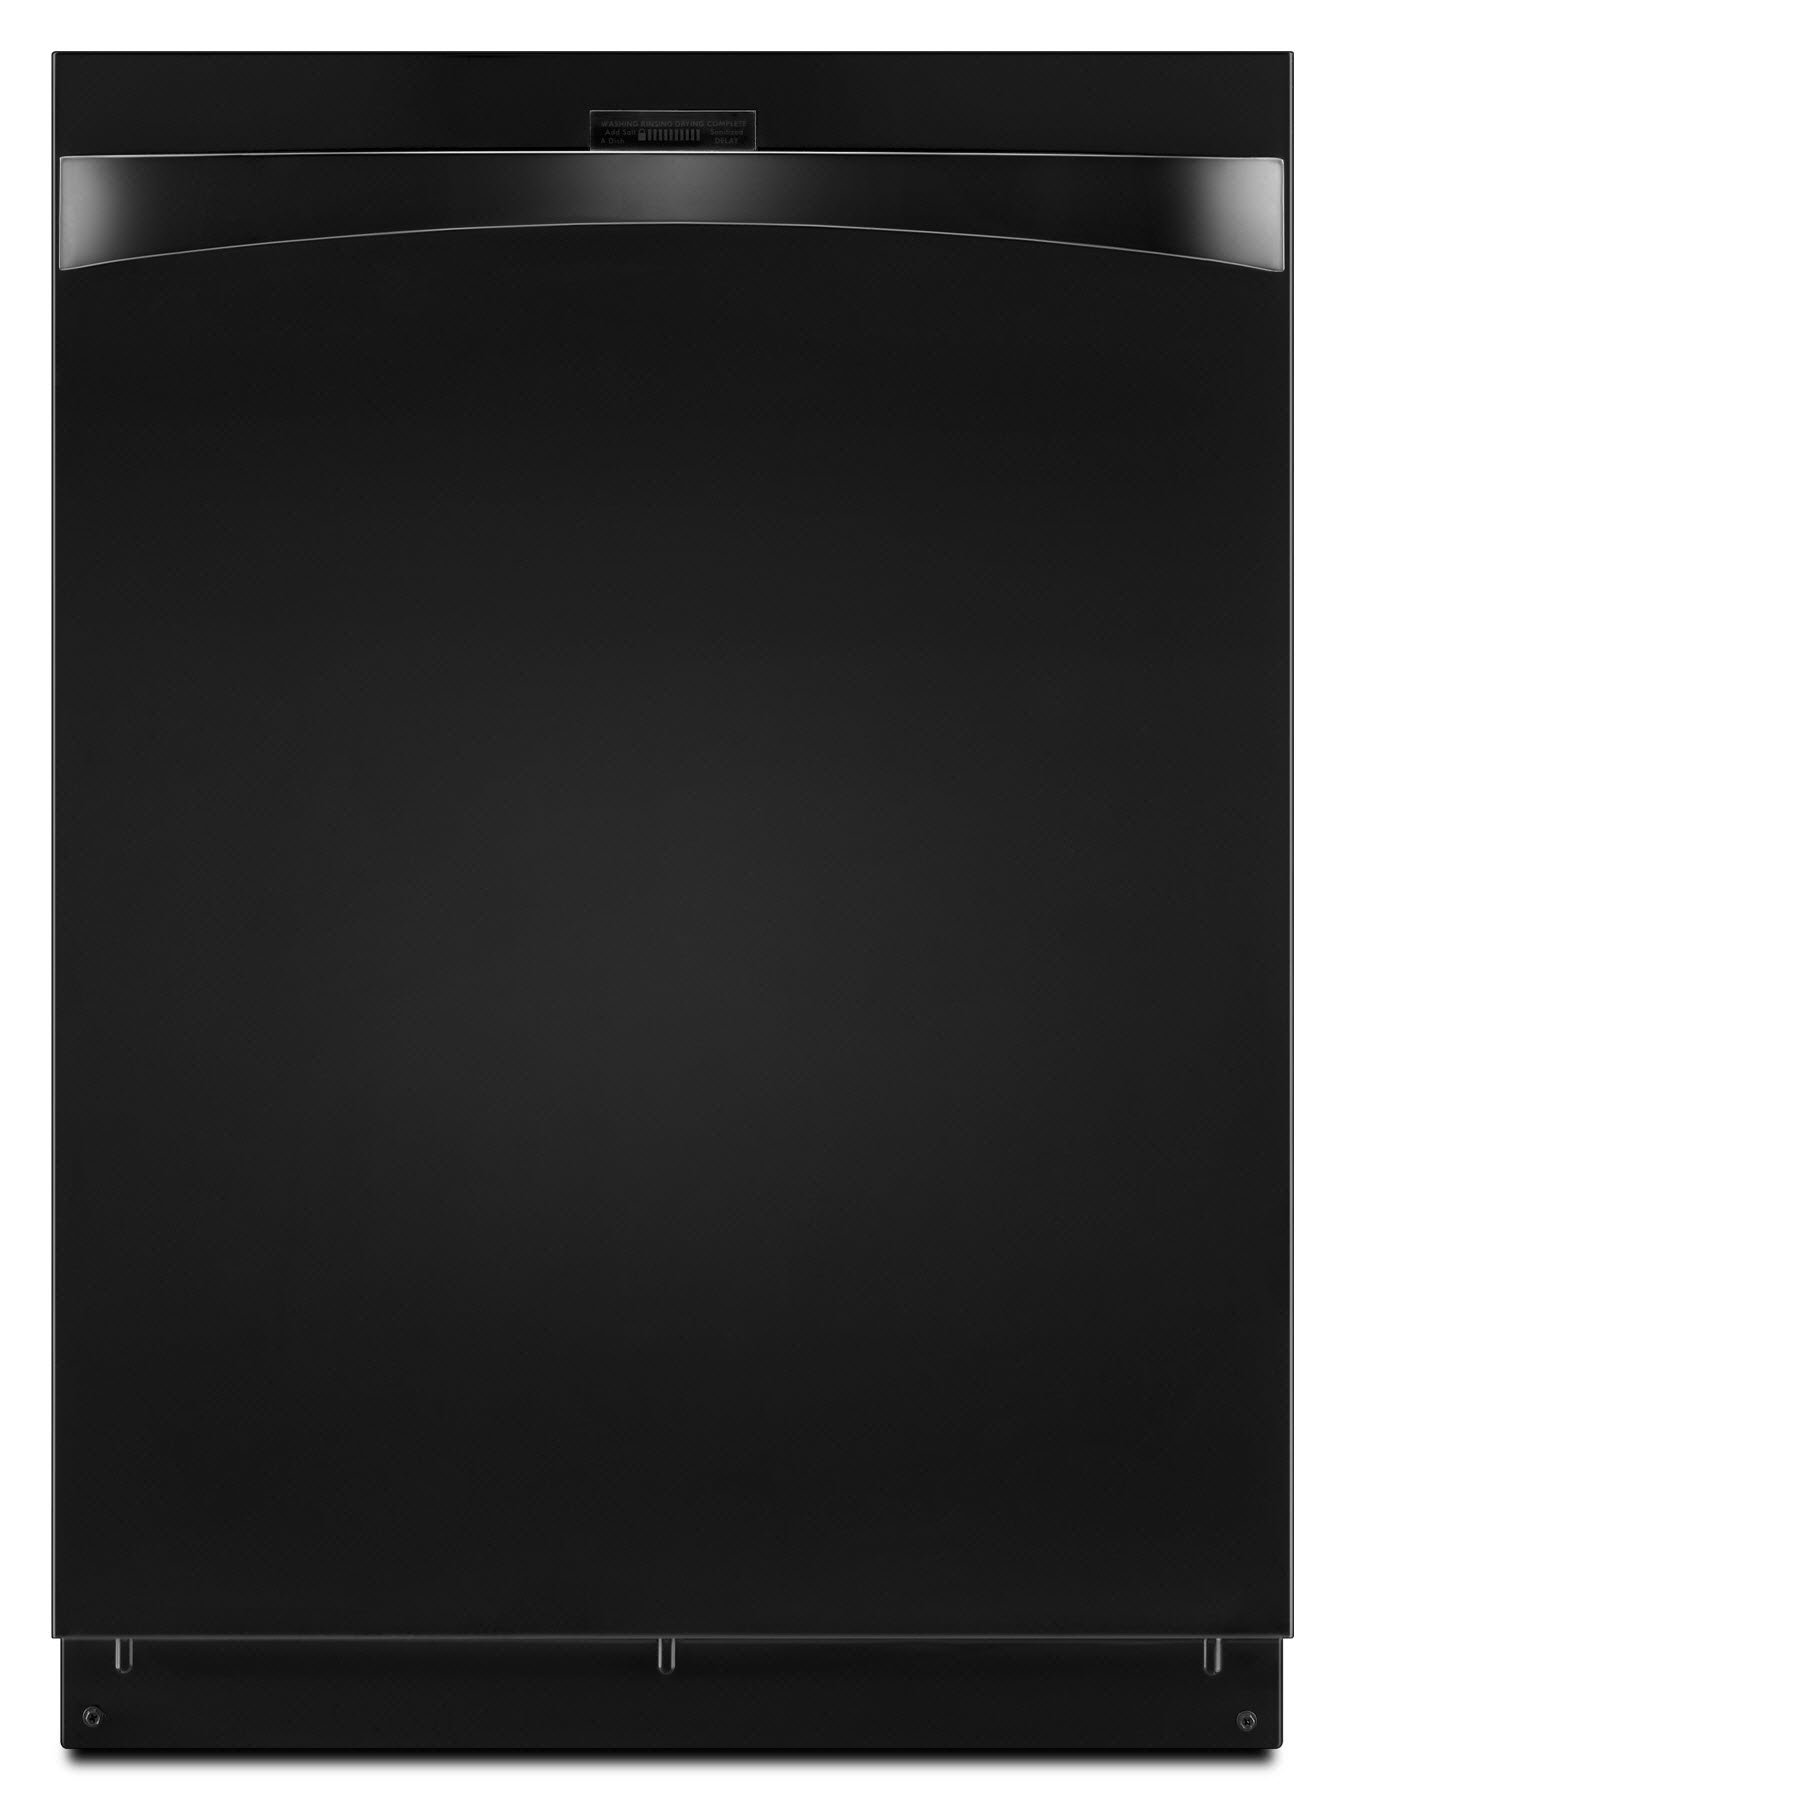 Kenmore Elite 24 Built-In Dishwasher w/ 360° PowerWash™ Technology - Black